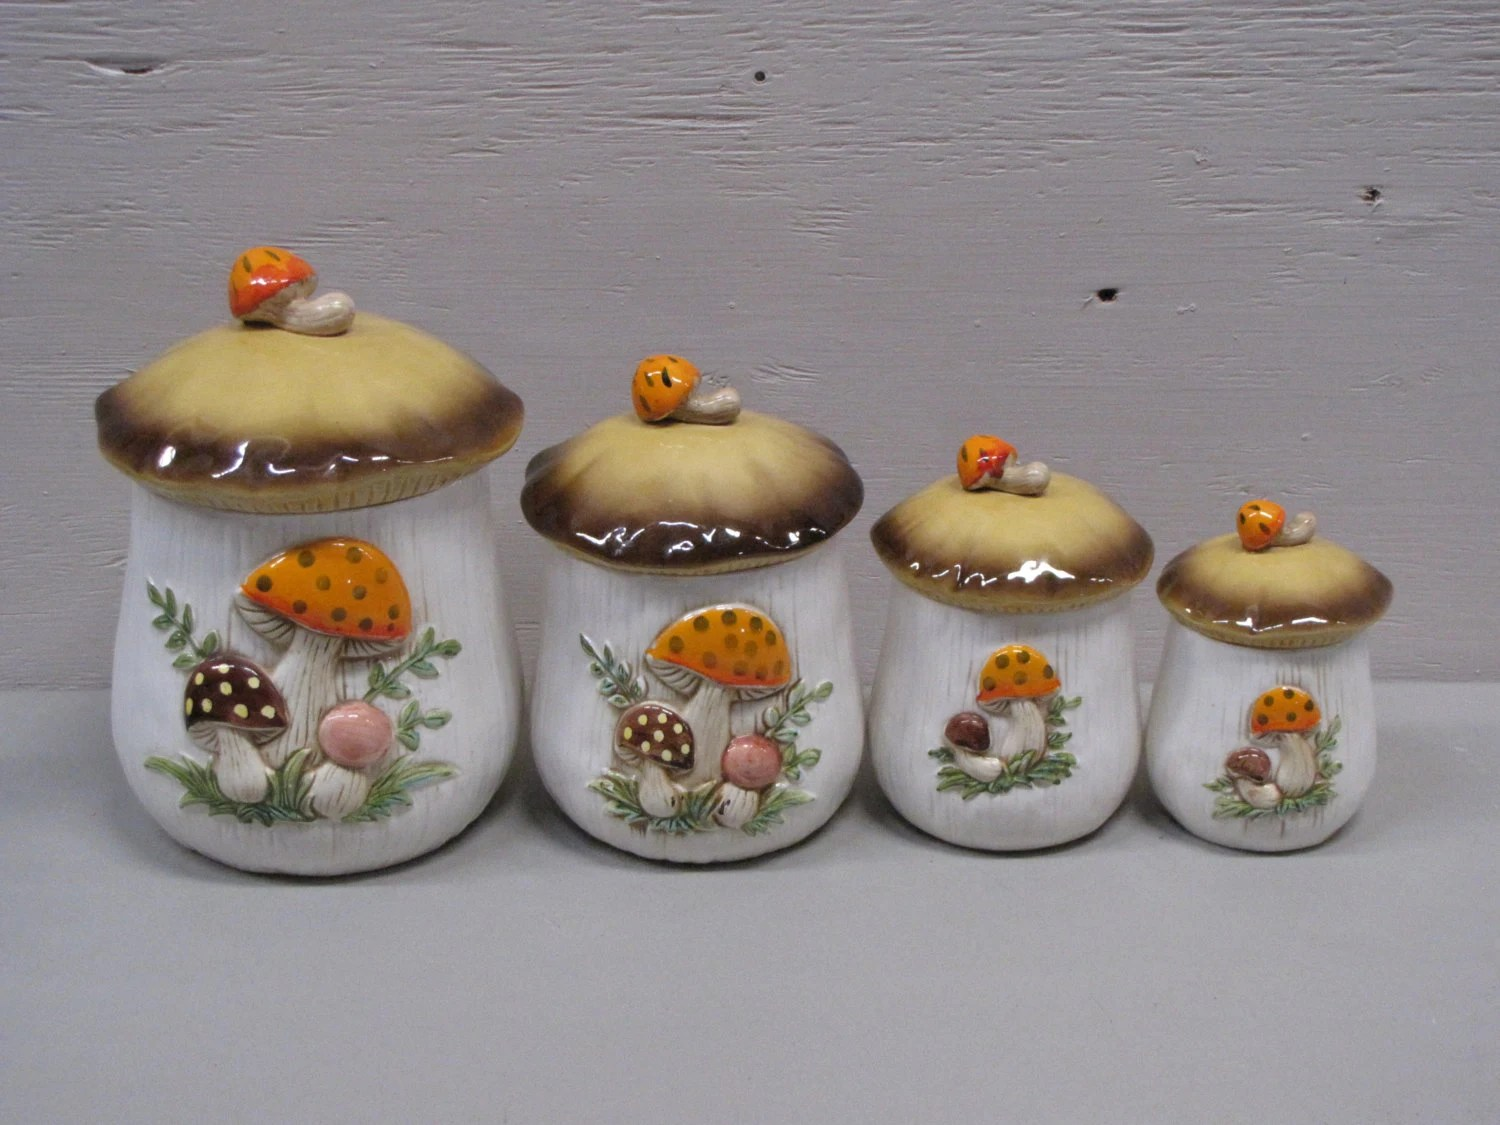 Ceramic Cookie Jar Sets Vintage Ceramic Brown And White Mushroom Cookie Jar Jar Set